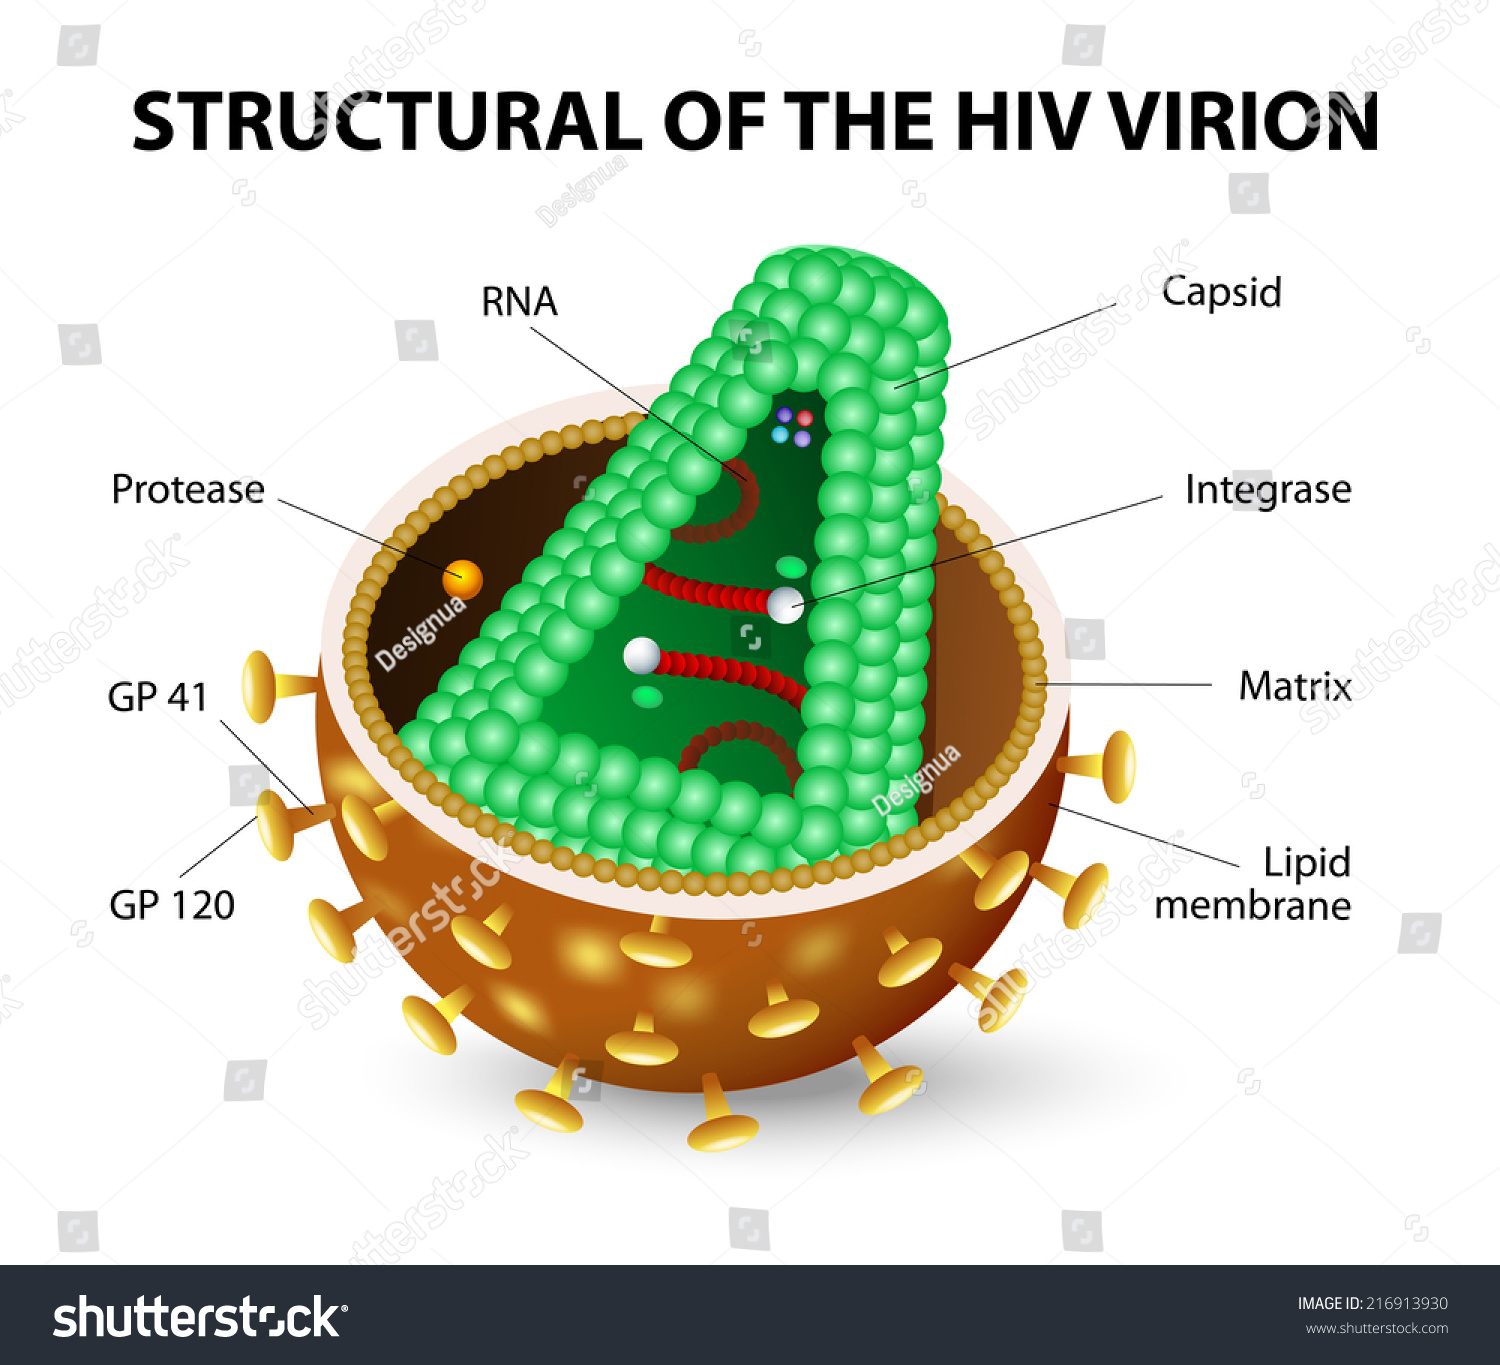 The Human Immunodeficiency Virus Or Hiv Anatomy Of The